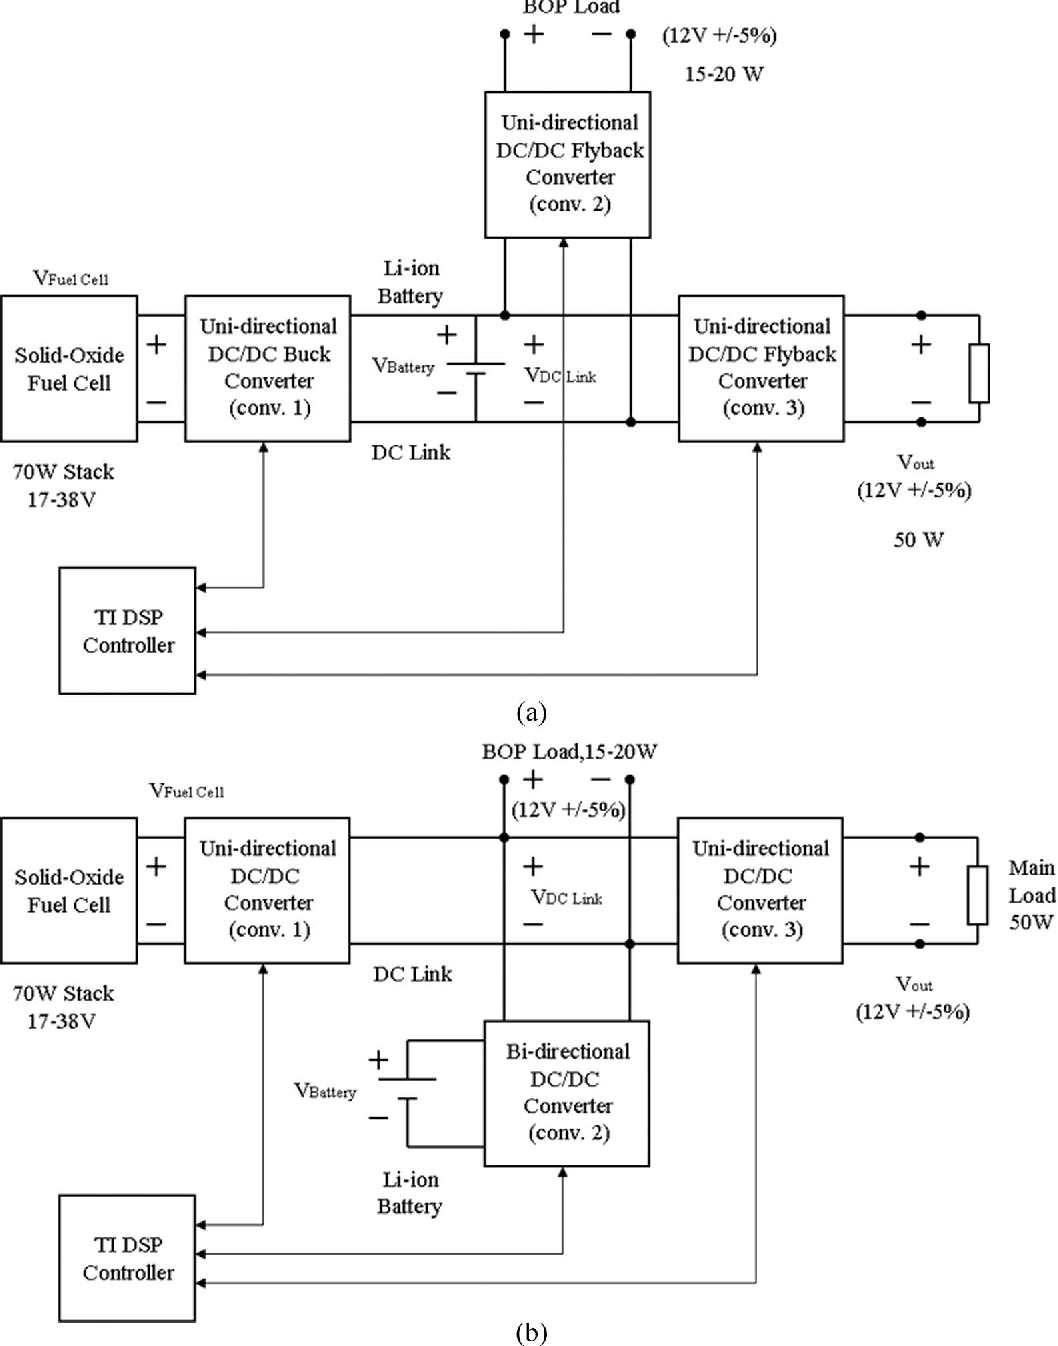 Digital Control of an Isolated Active Hybrid Fuel Cell/Li